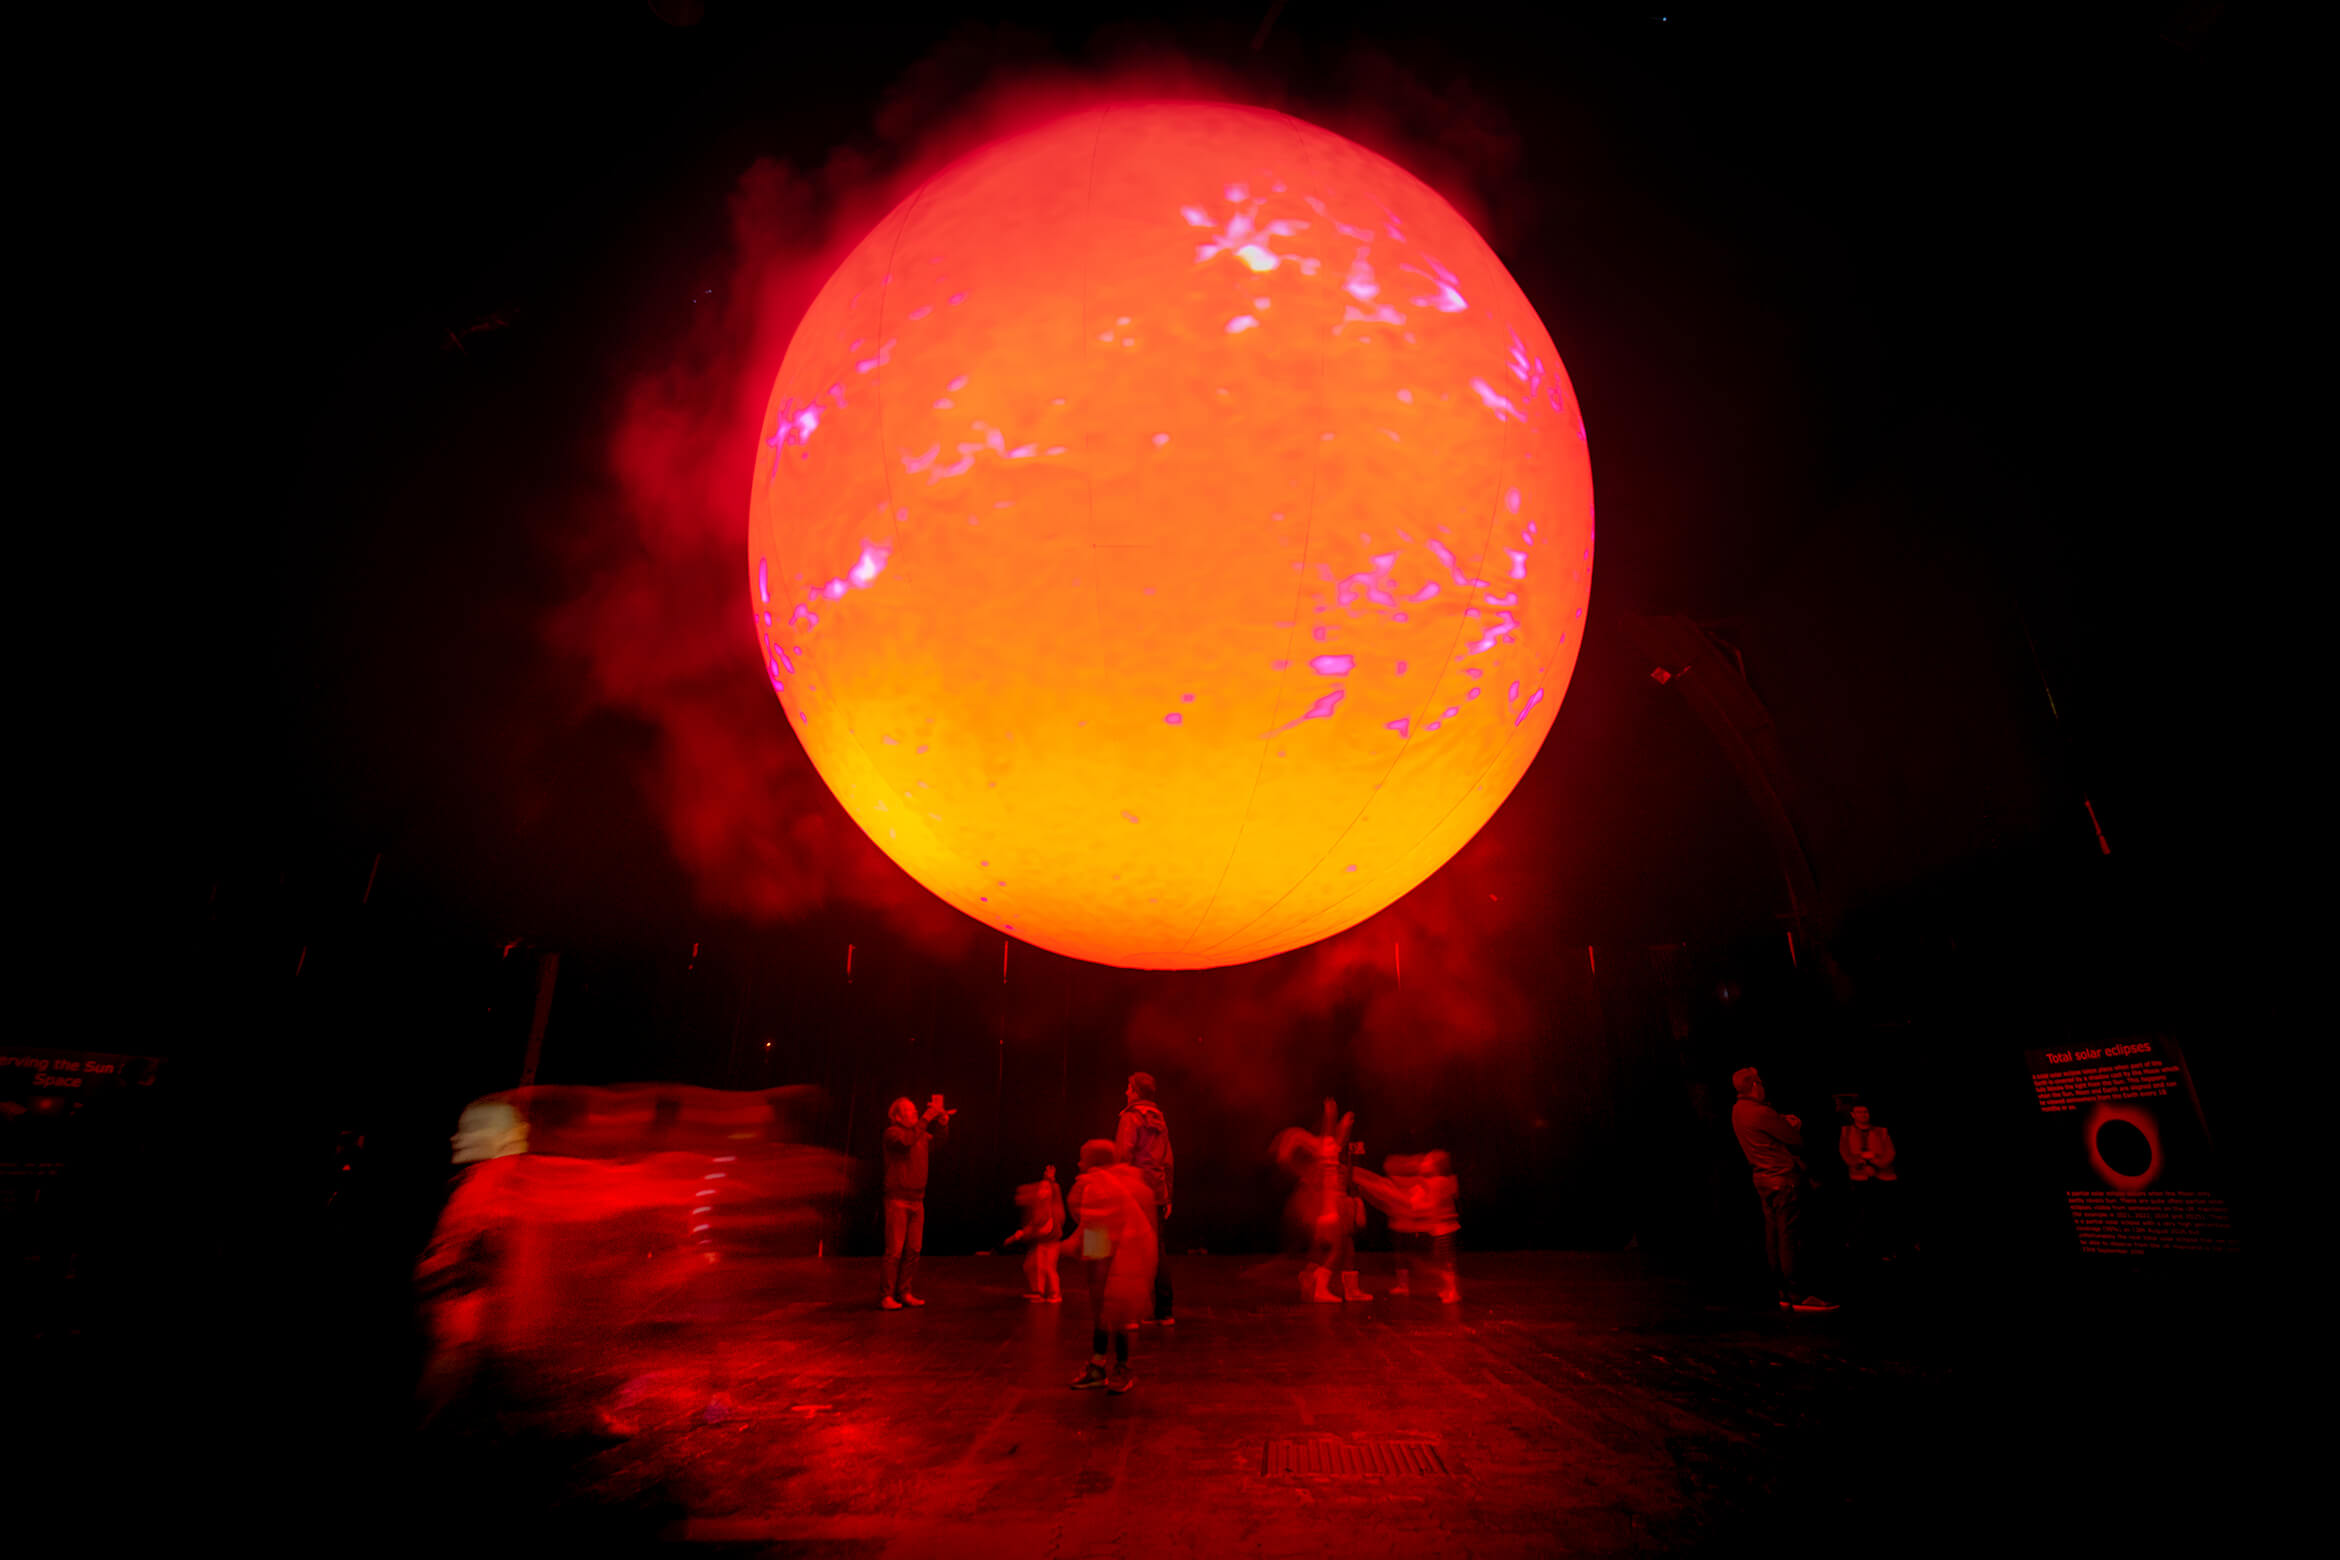 Photograph of SUN showing in a red phase with people below